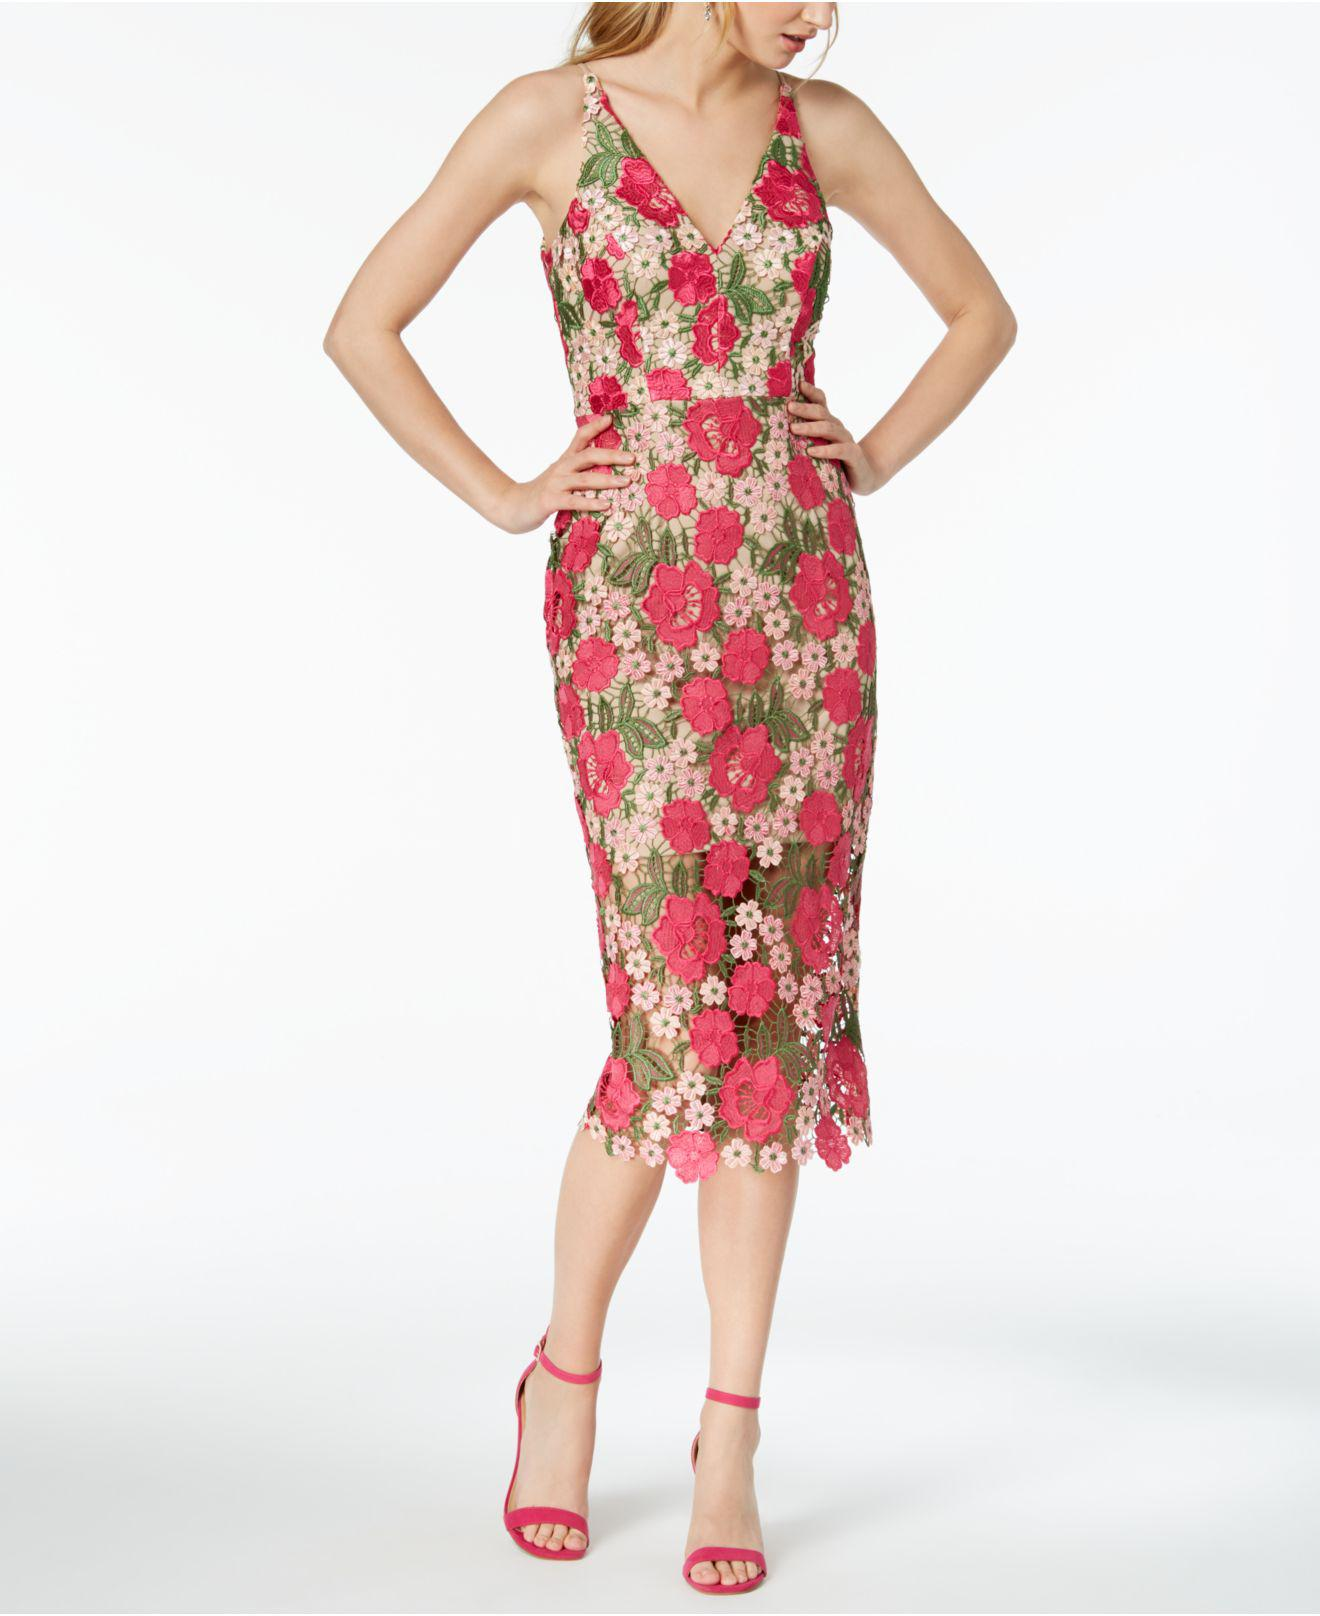 72cd4865522 Xscape Floral-pattern Lace Midi Dress in Red - Lyst